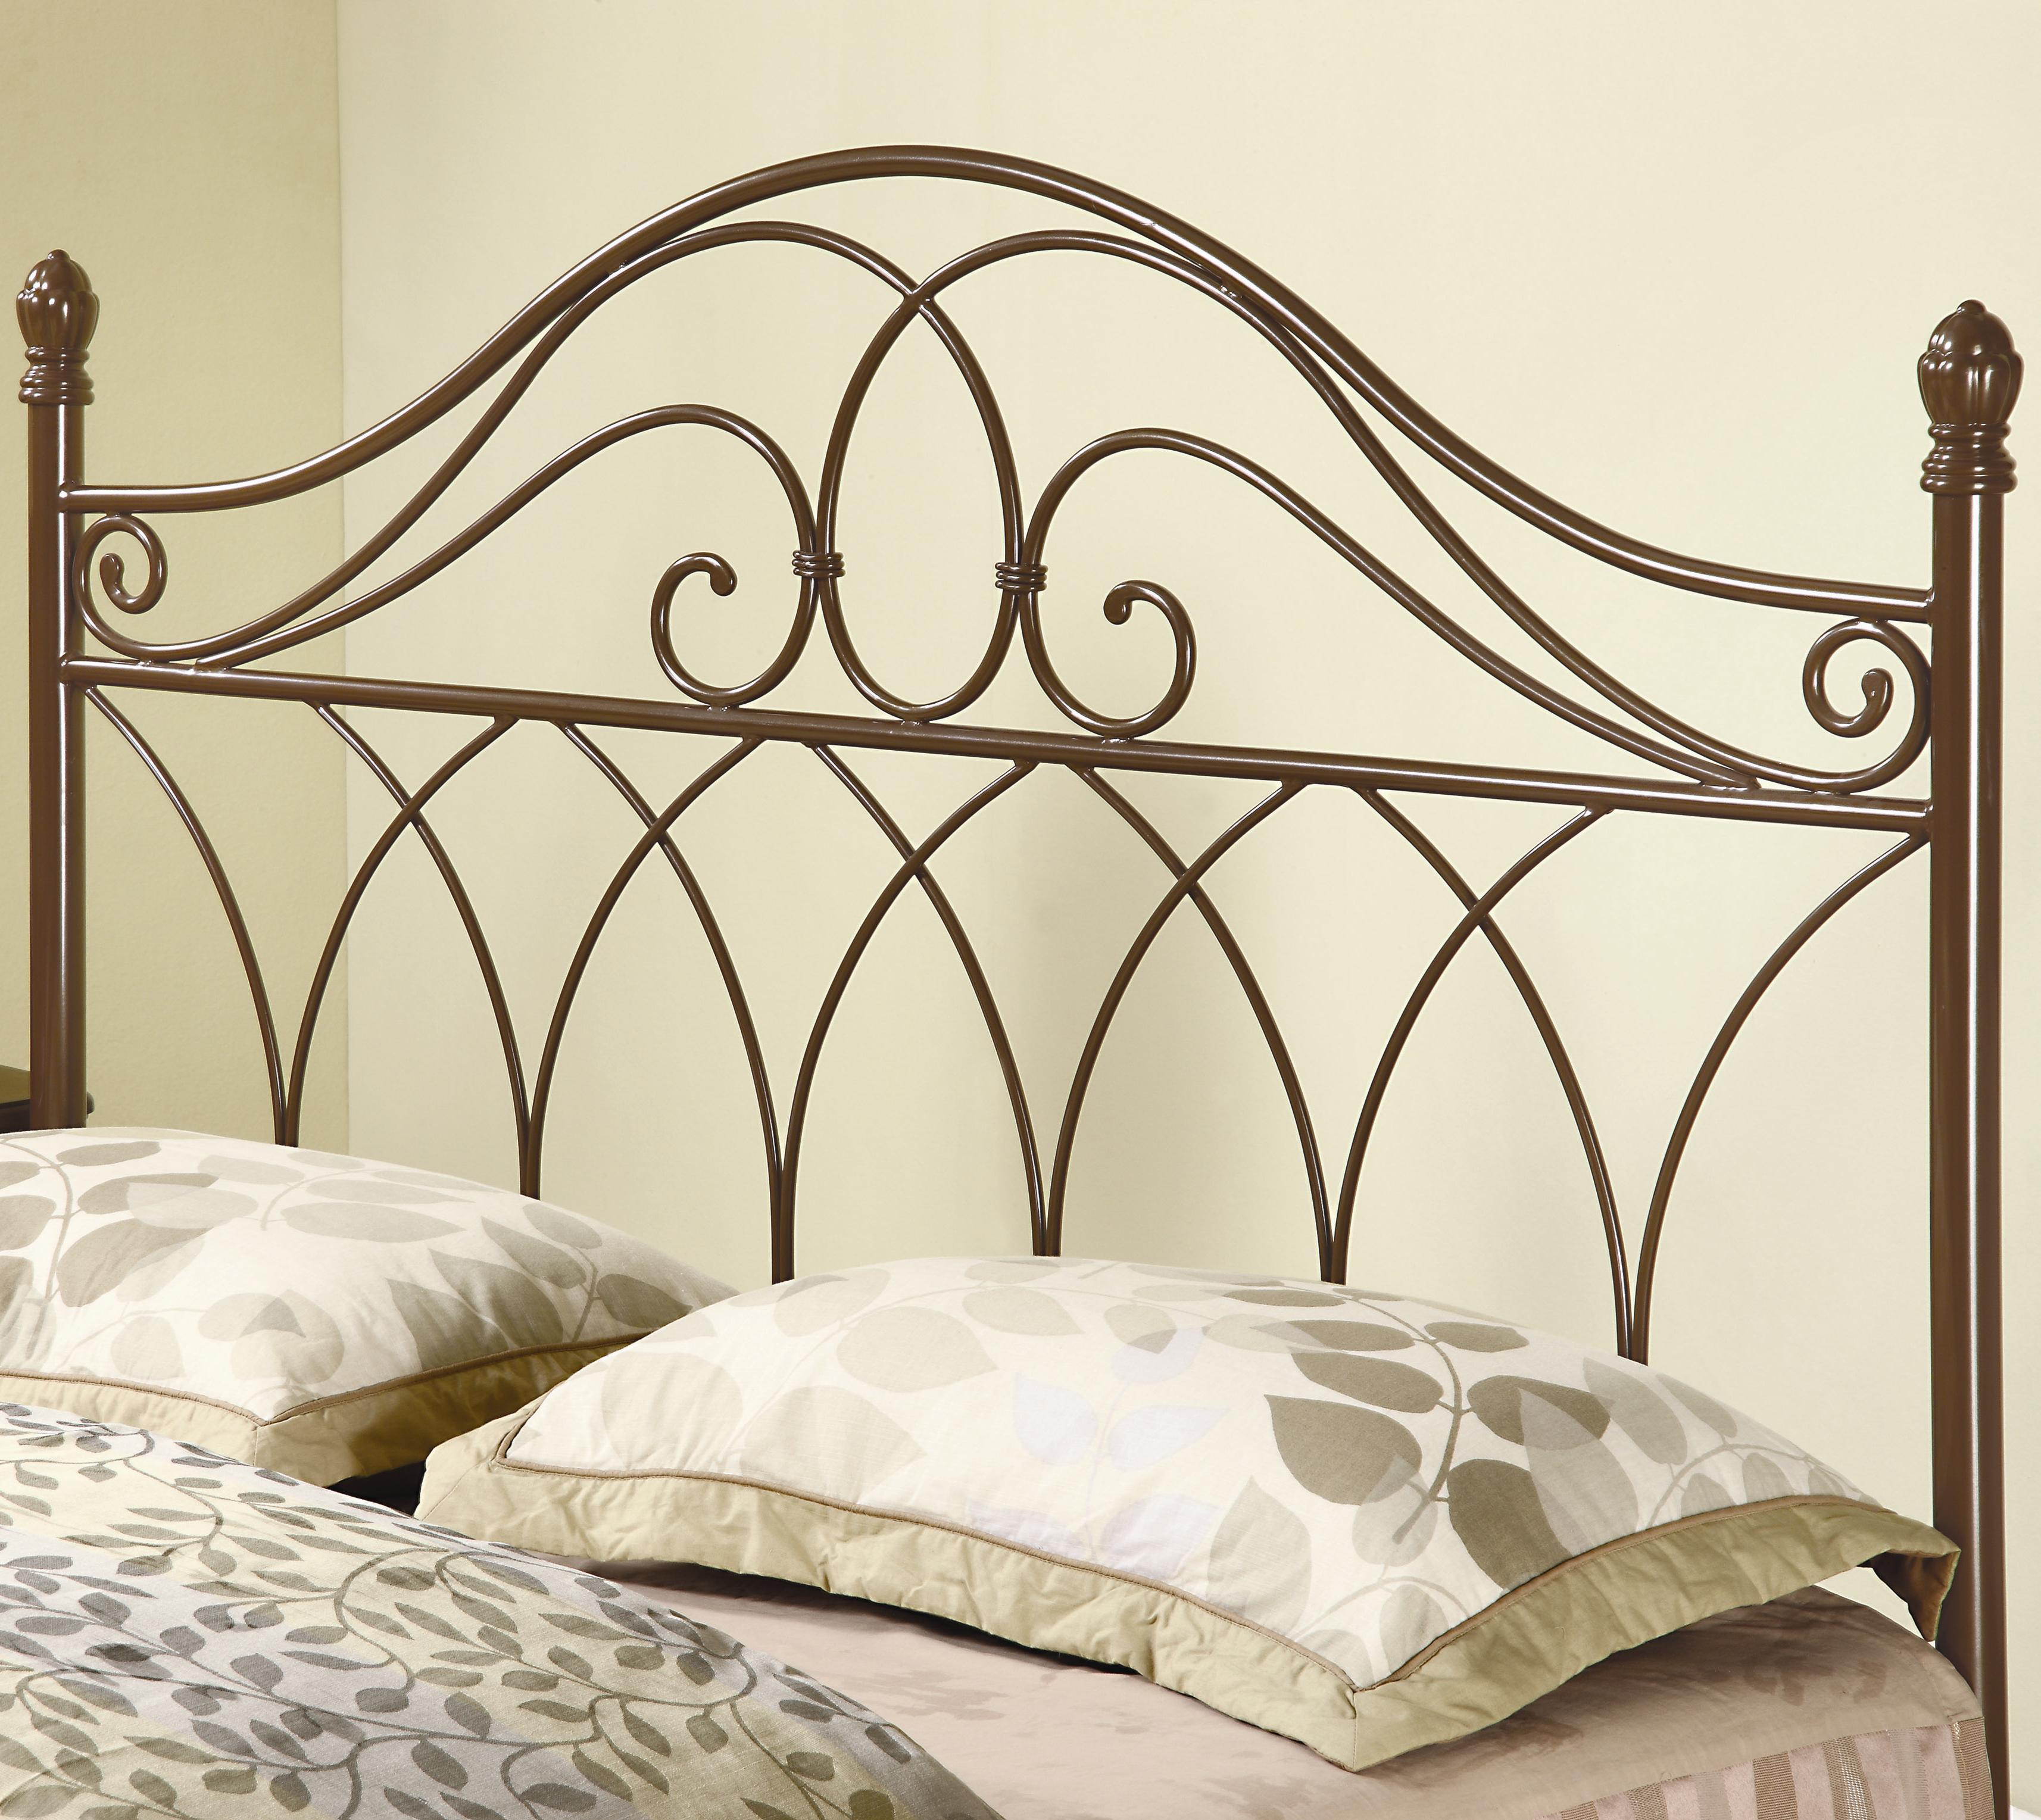 Coaster Iron Beds And Headboards Full Queen Brown Metal Headboard Rife S Home Furniture Headboards